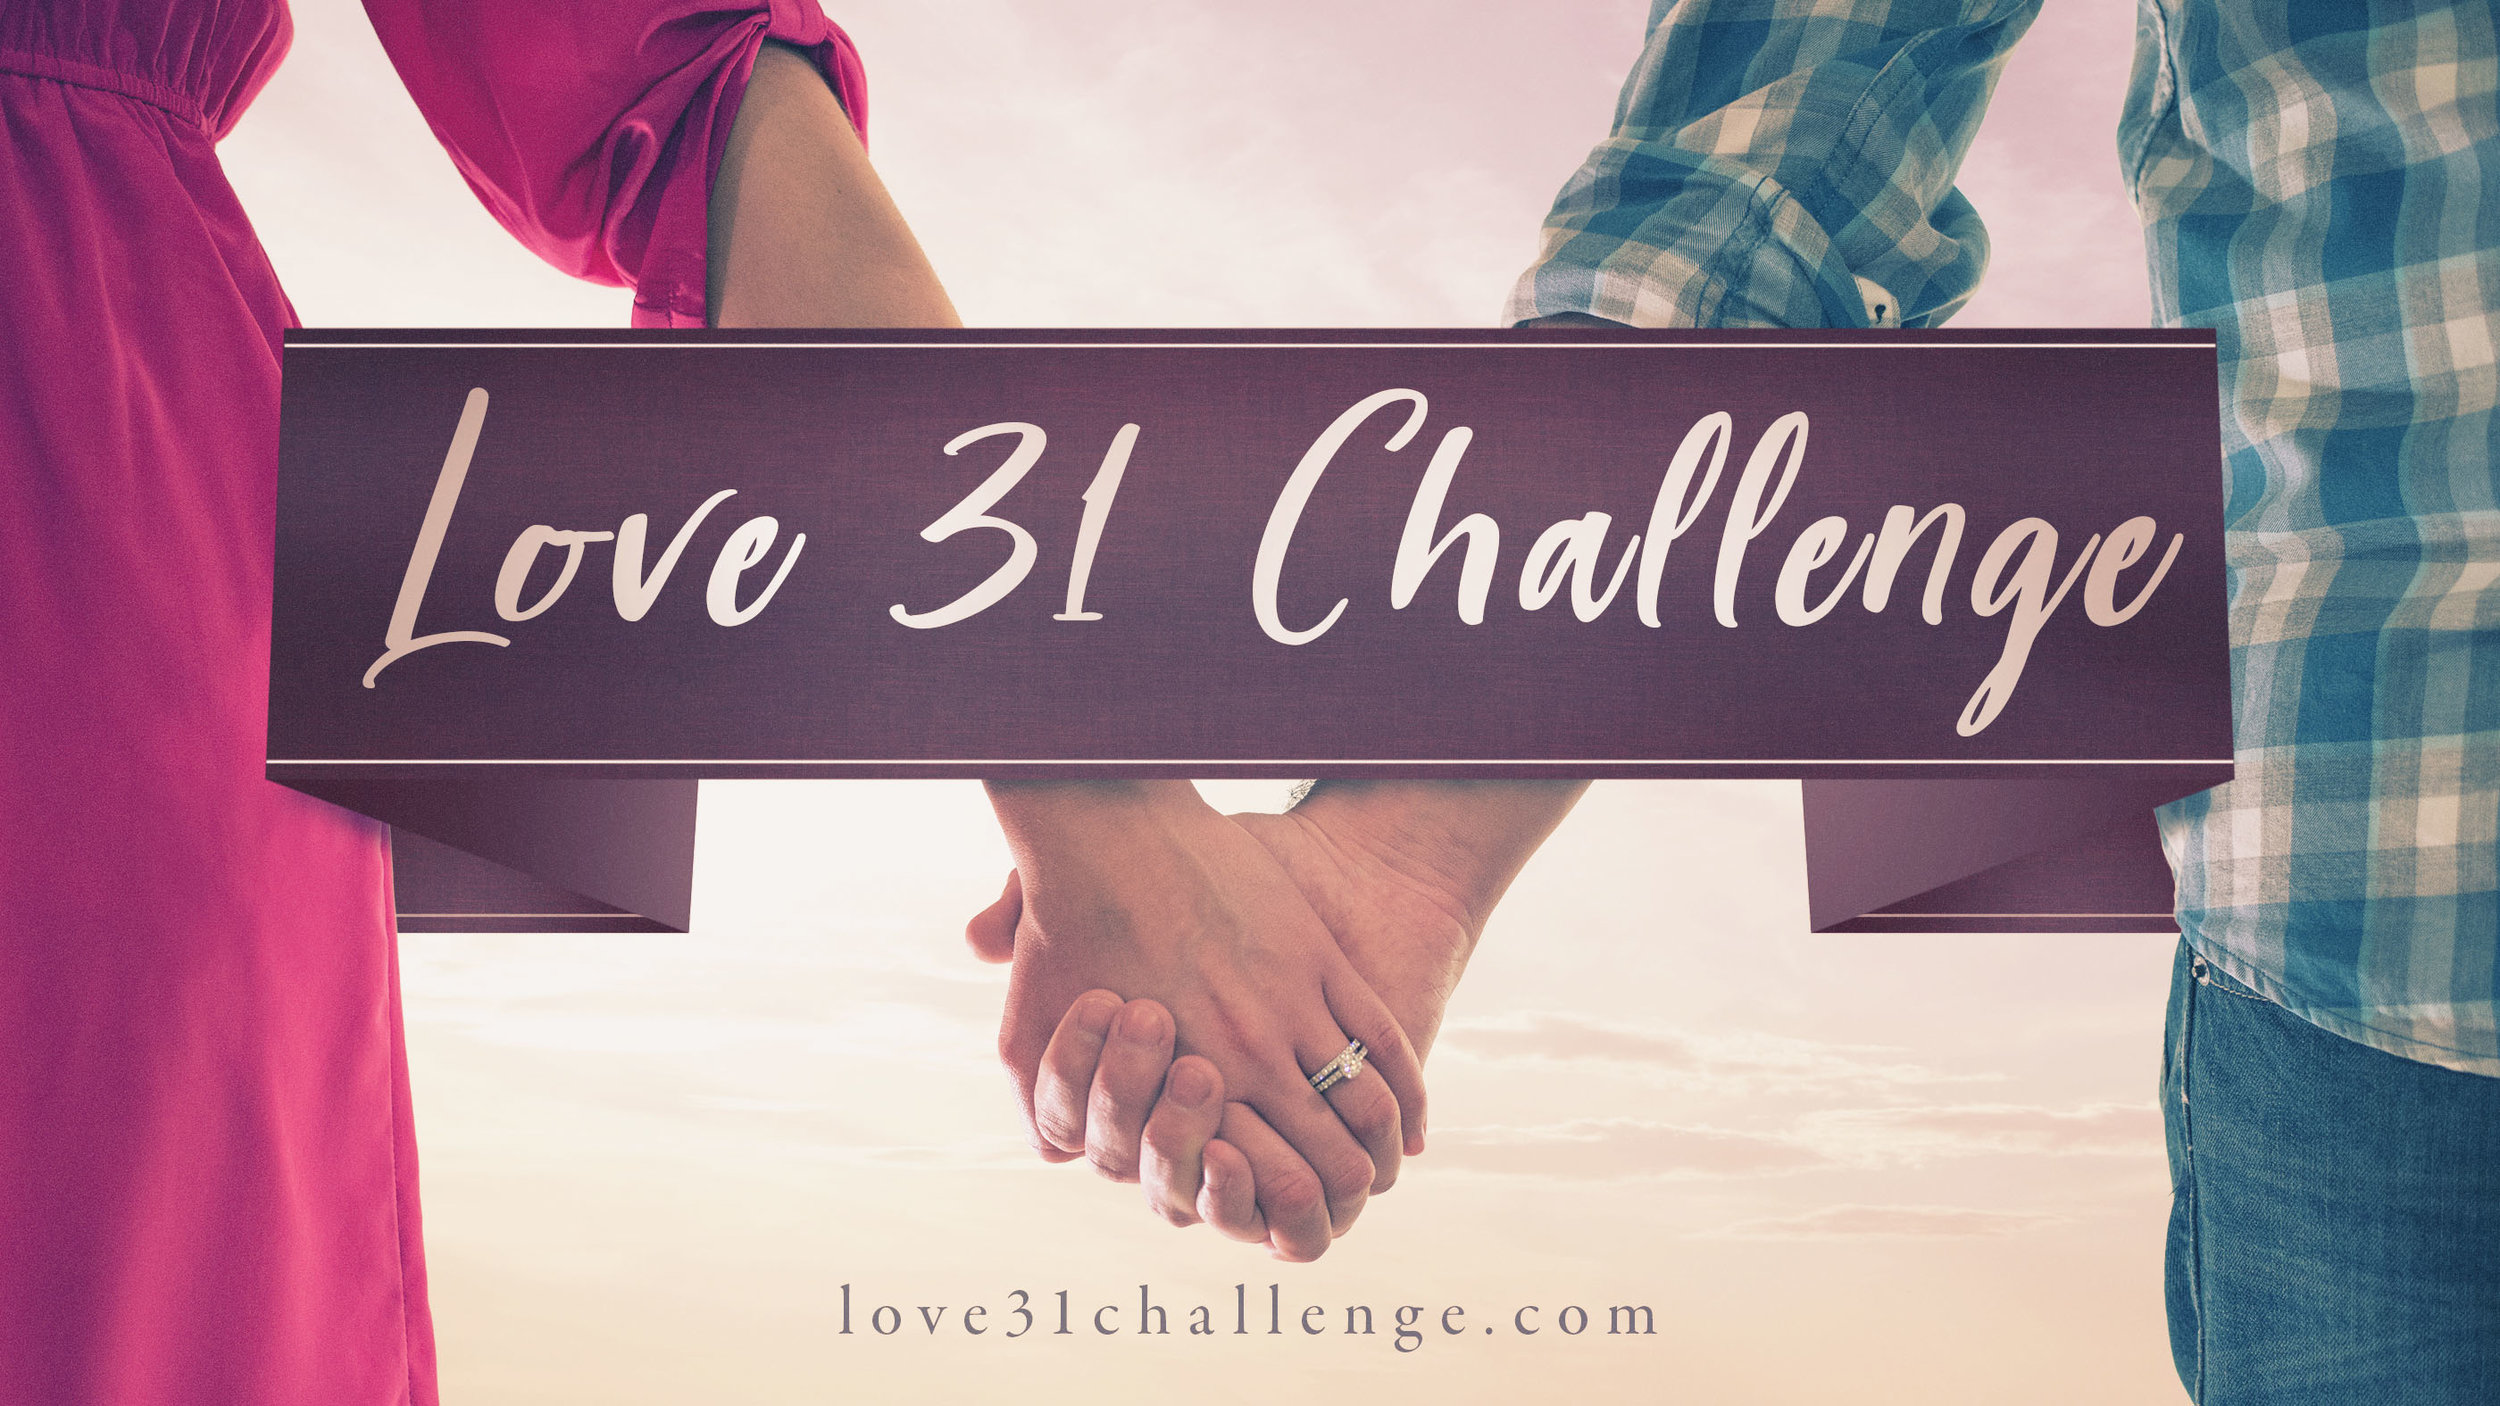 Ancient help for your modern marriage - What if the famous 'love' passage in 1 Corinthians 13 was more than just an inspirational quote to be read at weddings? What if it's an ancient blueprint on how to build a thriving and successful modern marriage? Take the Challenge and see for yourselves! Enter email addresses for both husband and wife and you'll journey together over the next 31 days to see how applying Scripture can revolutionize your marriage!